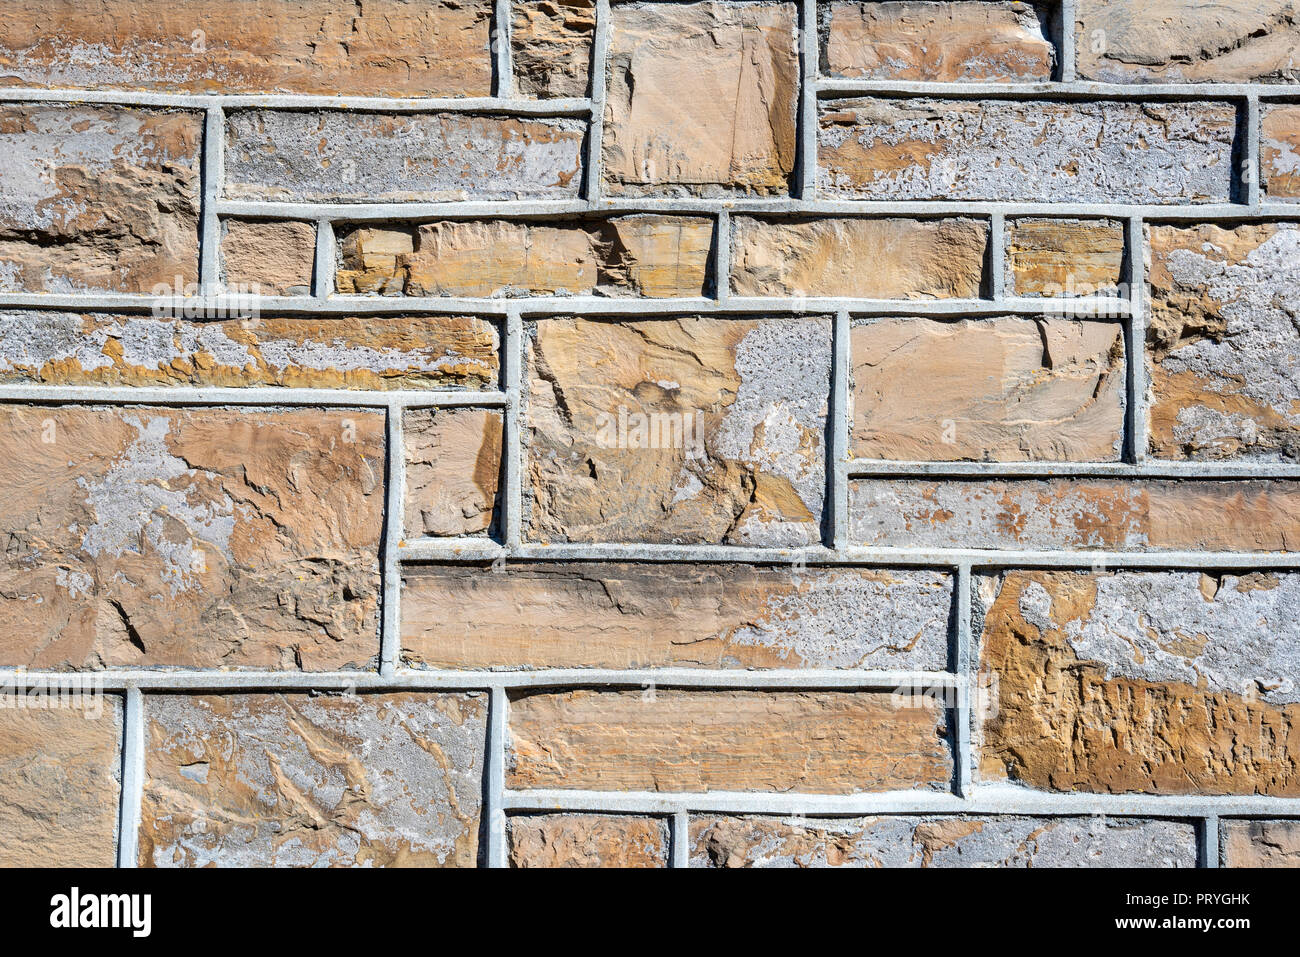 Bordered bricks, house facade, background image, Kirkwall, Orkney, Scotland, Great Britain - Stock Image